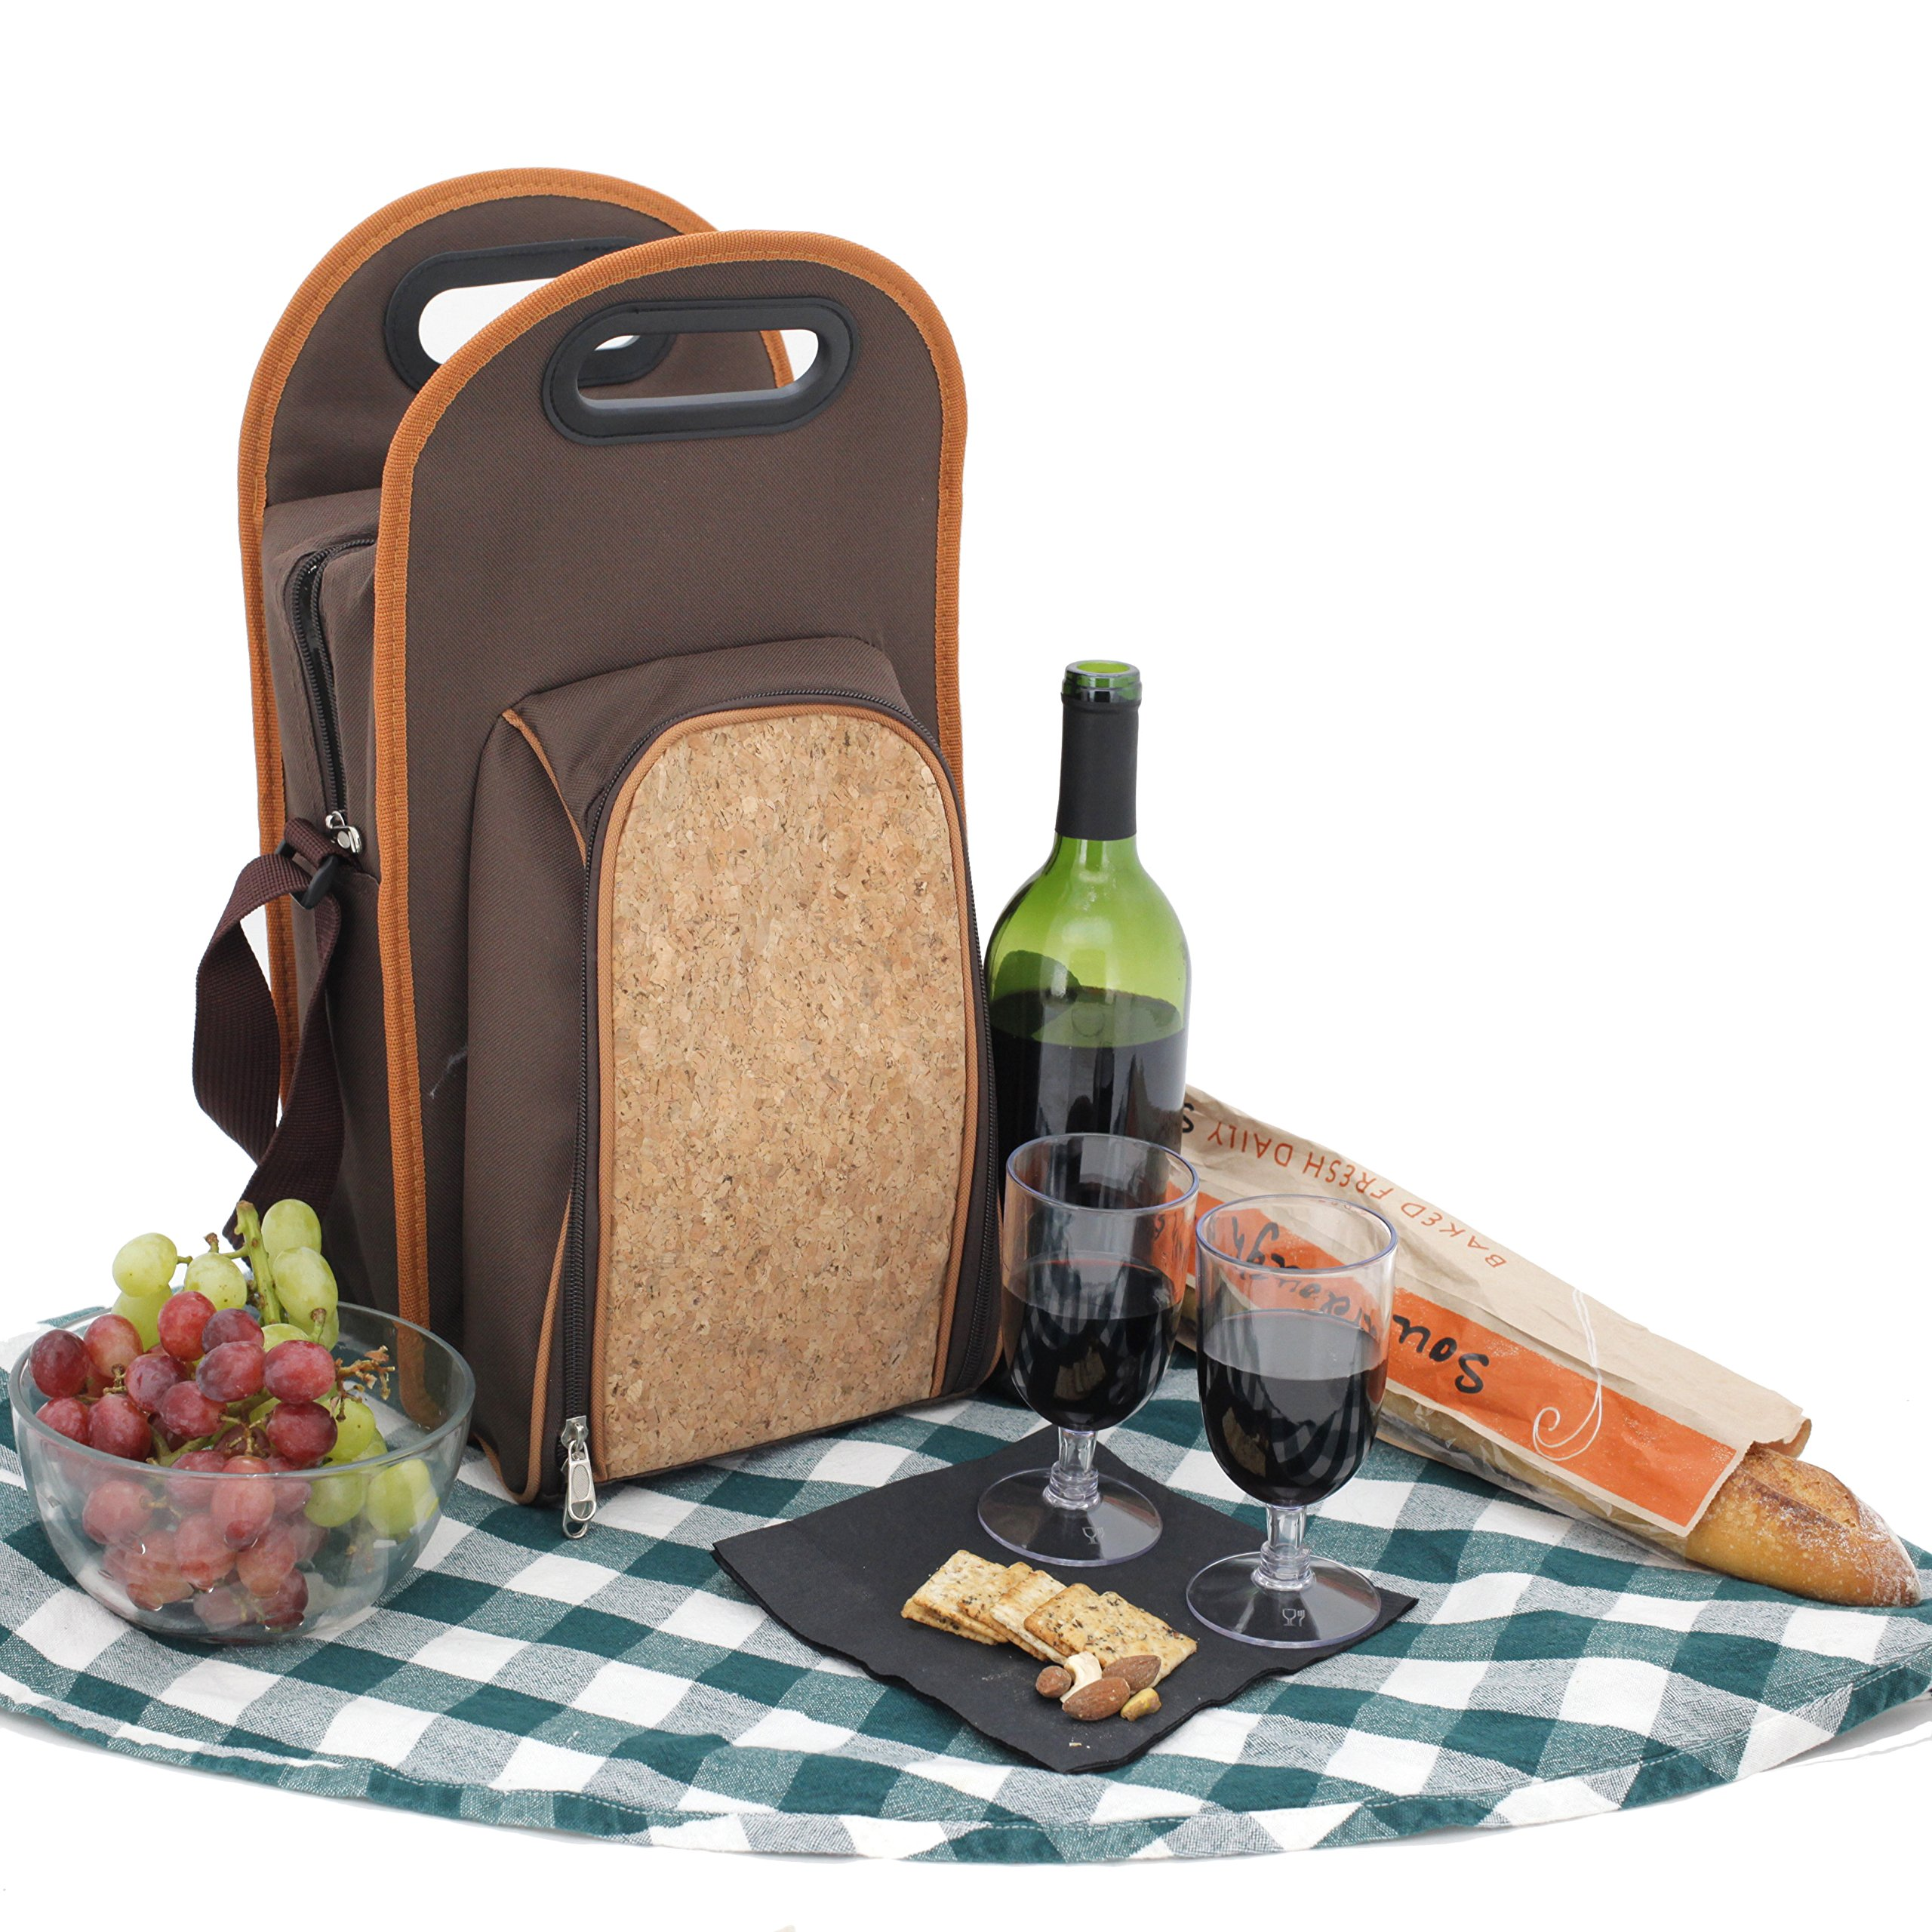 Bucasi PB200 Wine Travel Insulated Cooler Wine Carrier Tote Bag with Carrying Strap - Includes Wine Opener, and Glasses with Natural Cork Design